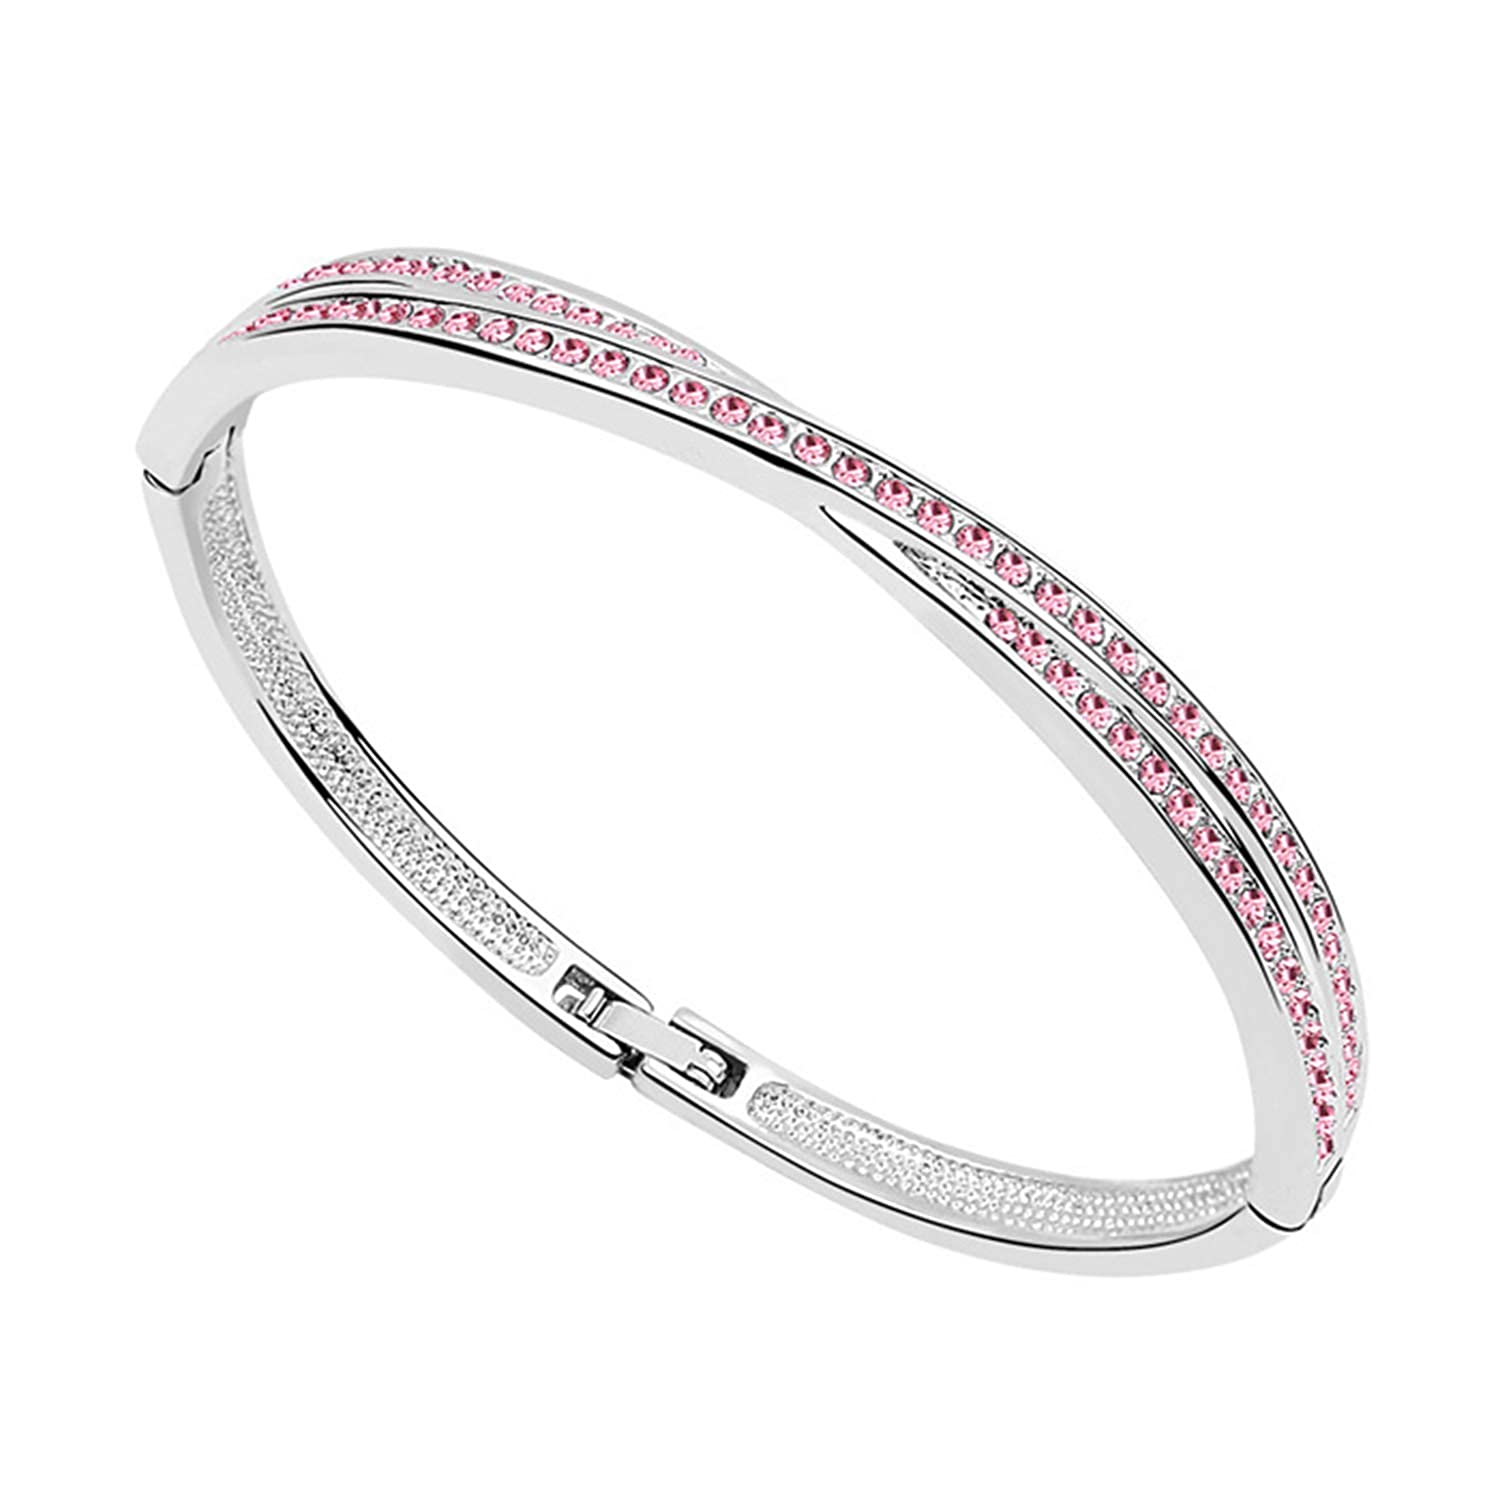 Rhinestones Circle Cuff X Bracelet Bangle Fashion Jewelry Free Charms Women Cute Romantic Lover Gift Quality AAAA